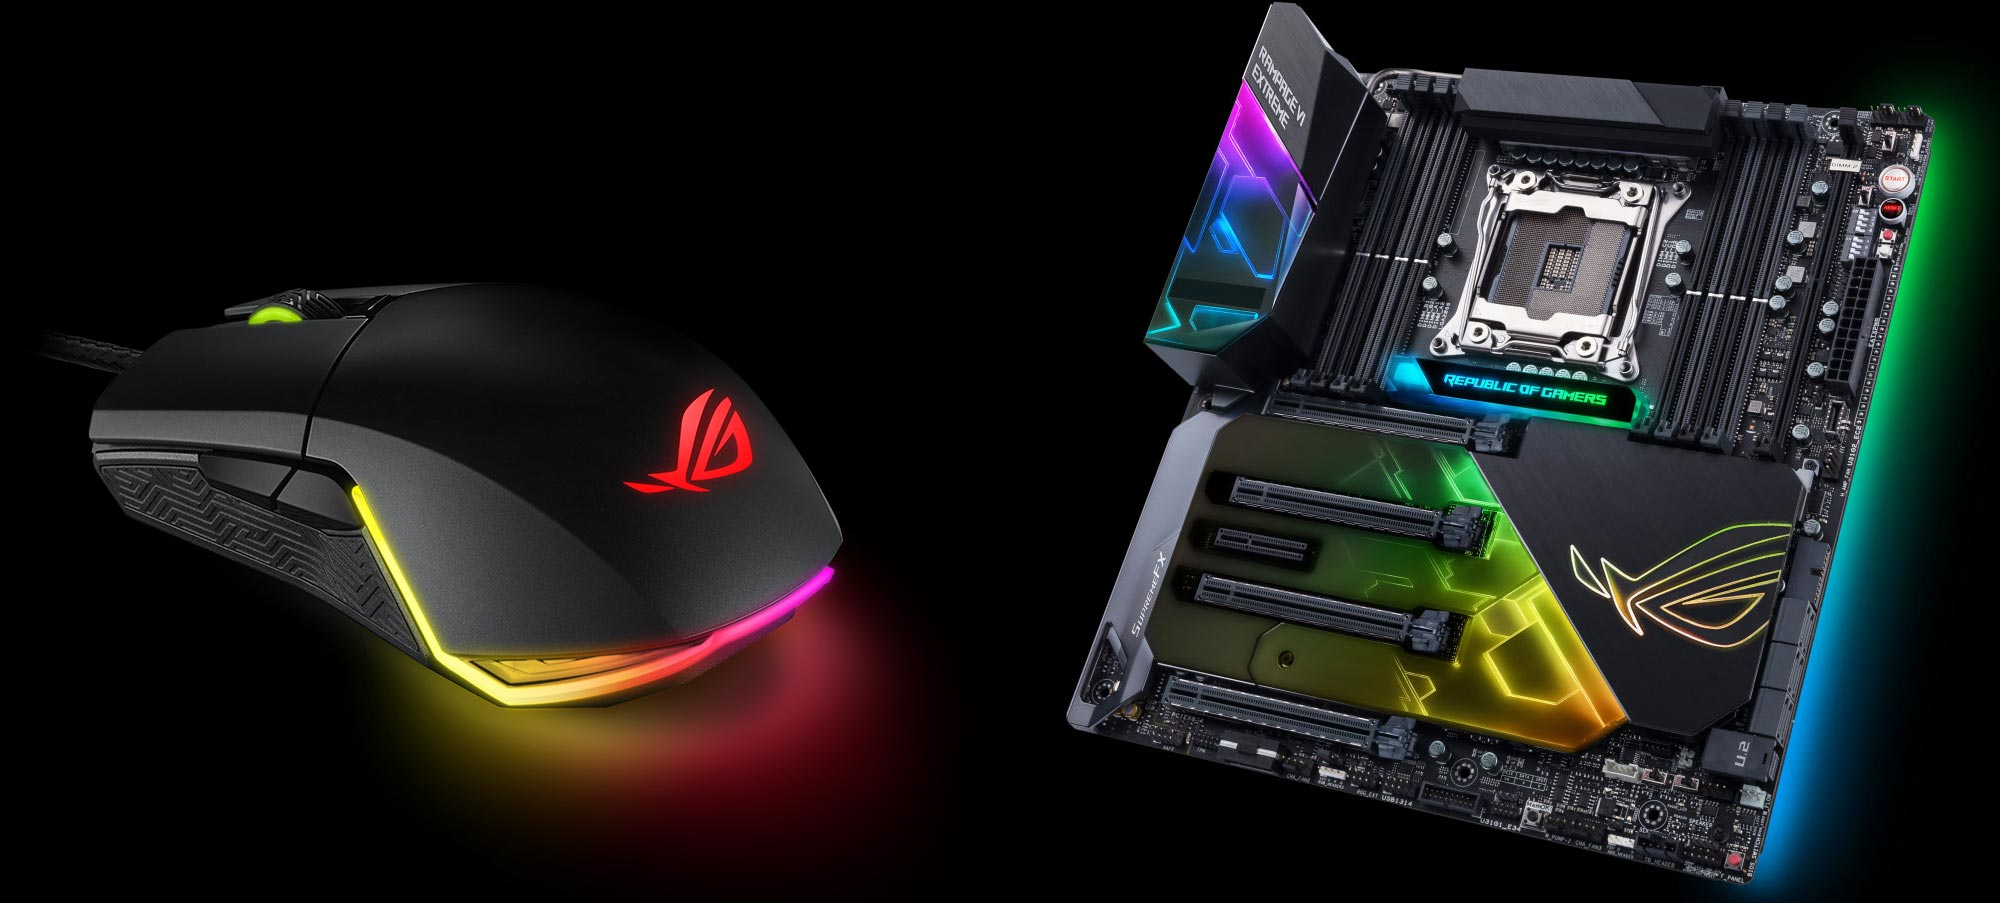 The evolution of Aura RGB lighting leads to an official SDK